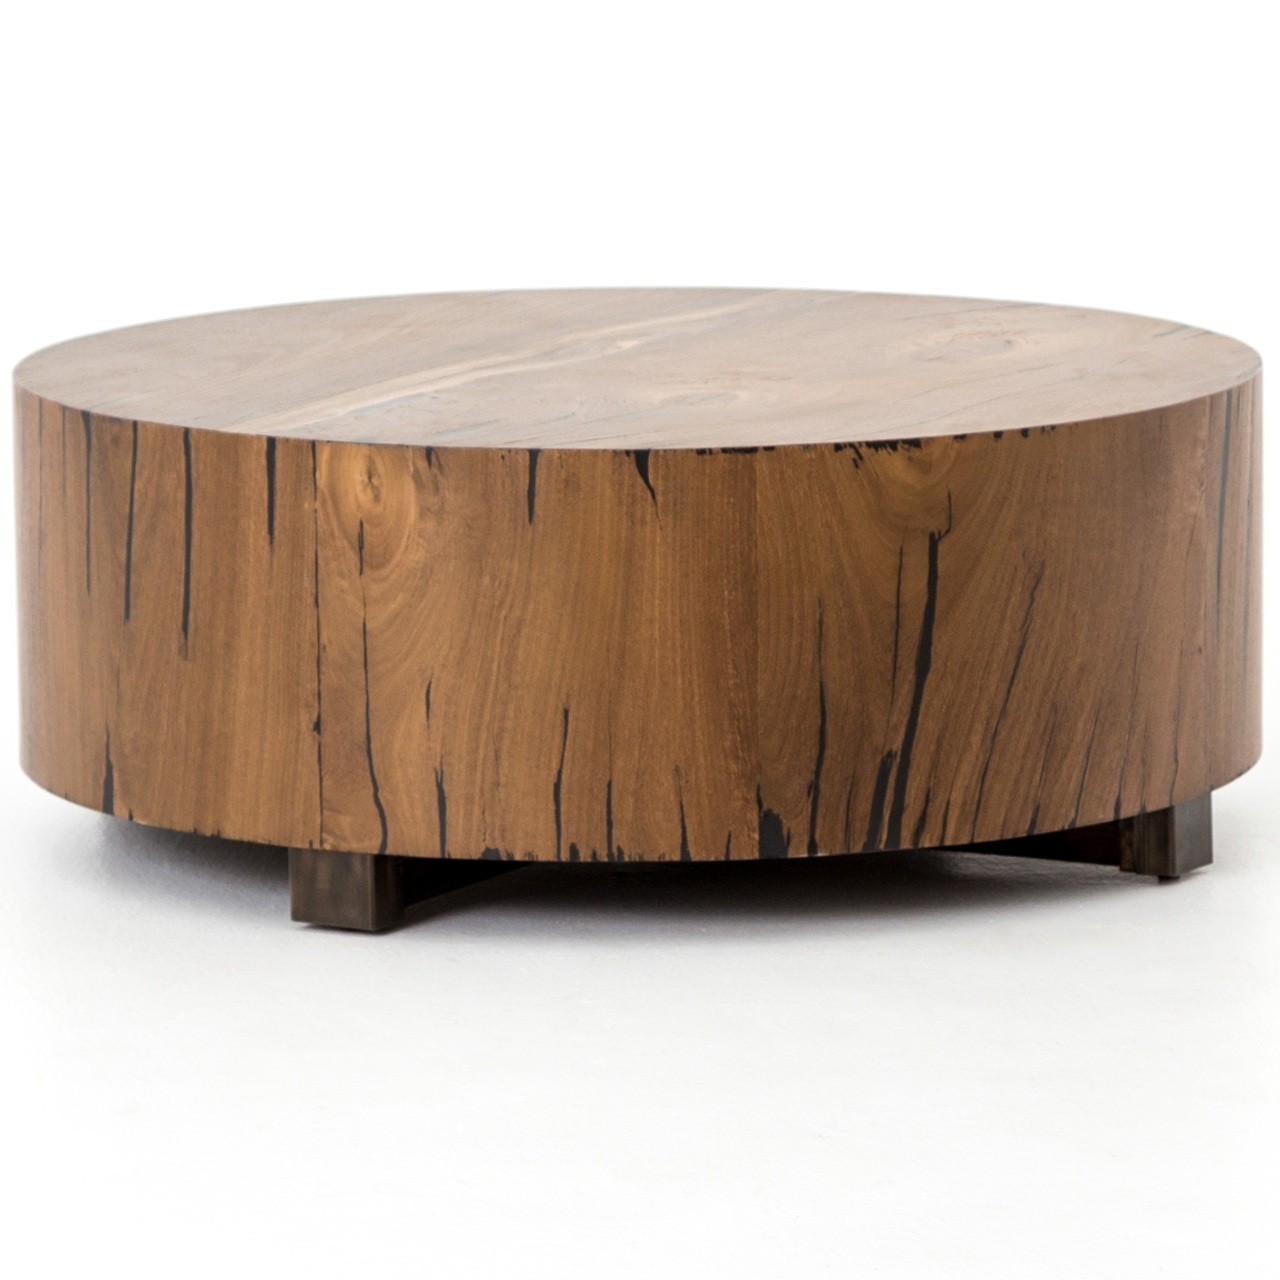 round wood coffee table Hudson Round Natural Yukas Wood Block Coffee Table | Zin Home round wood coffee table